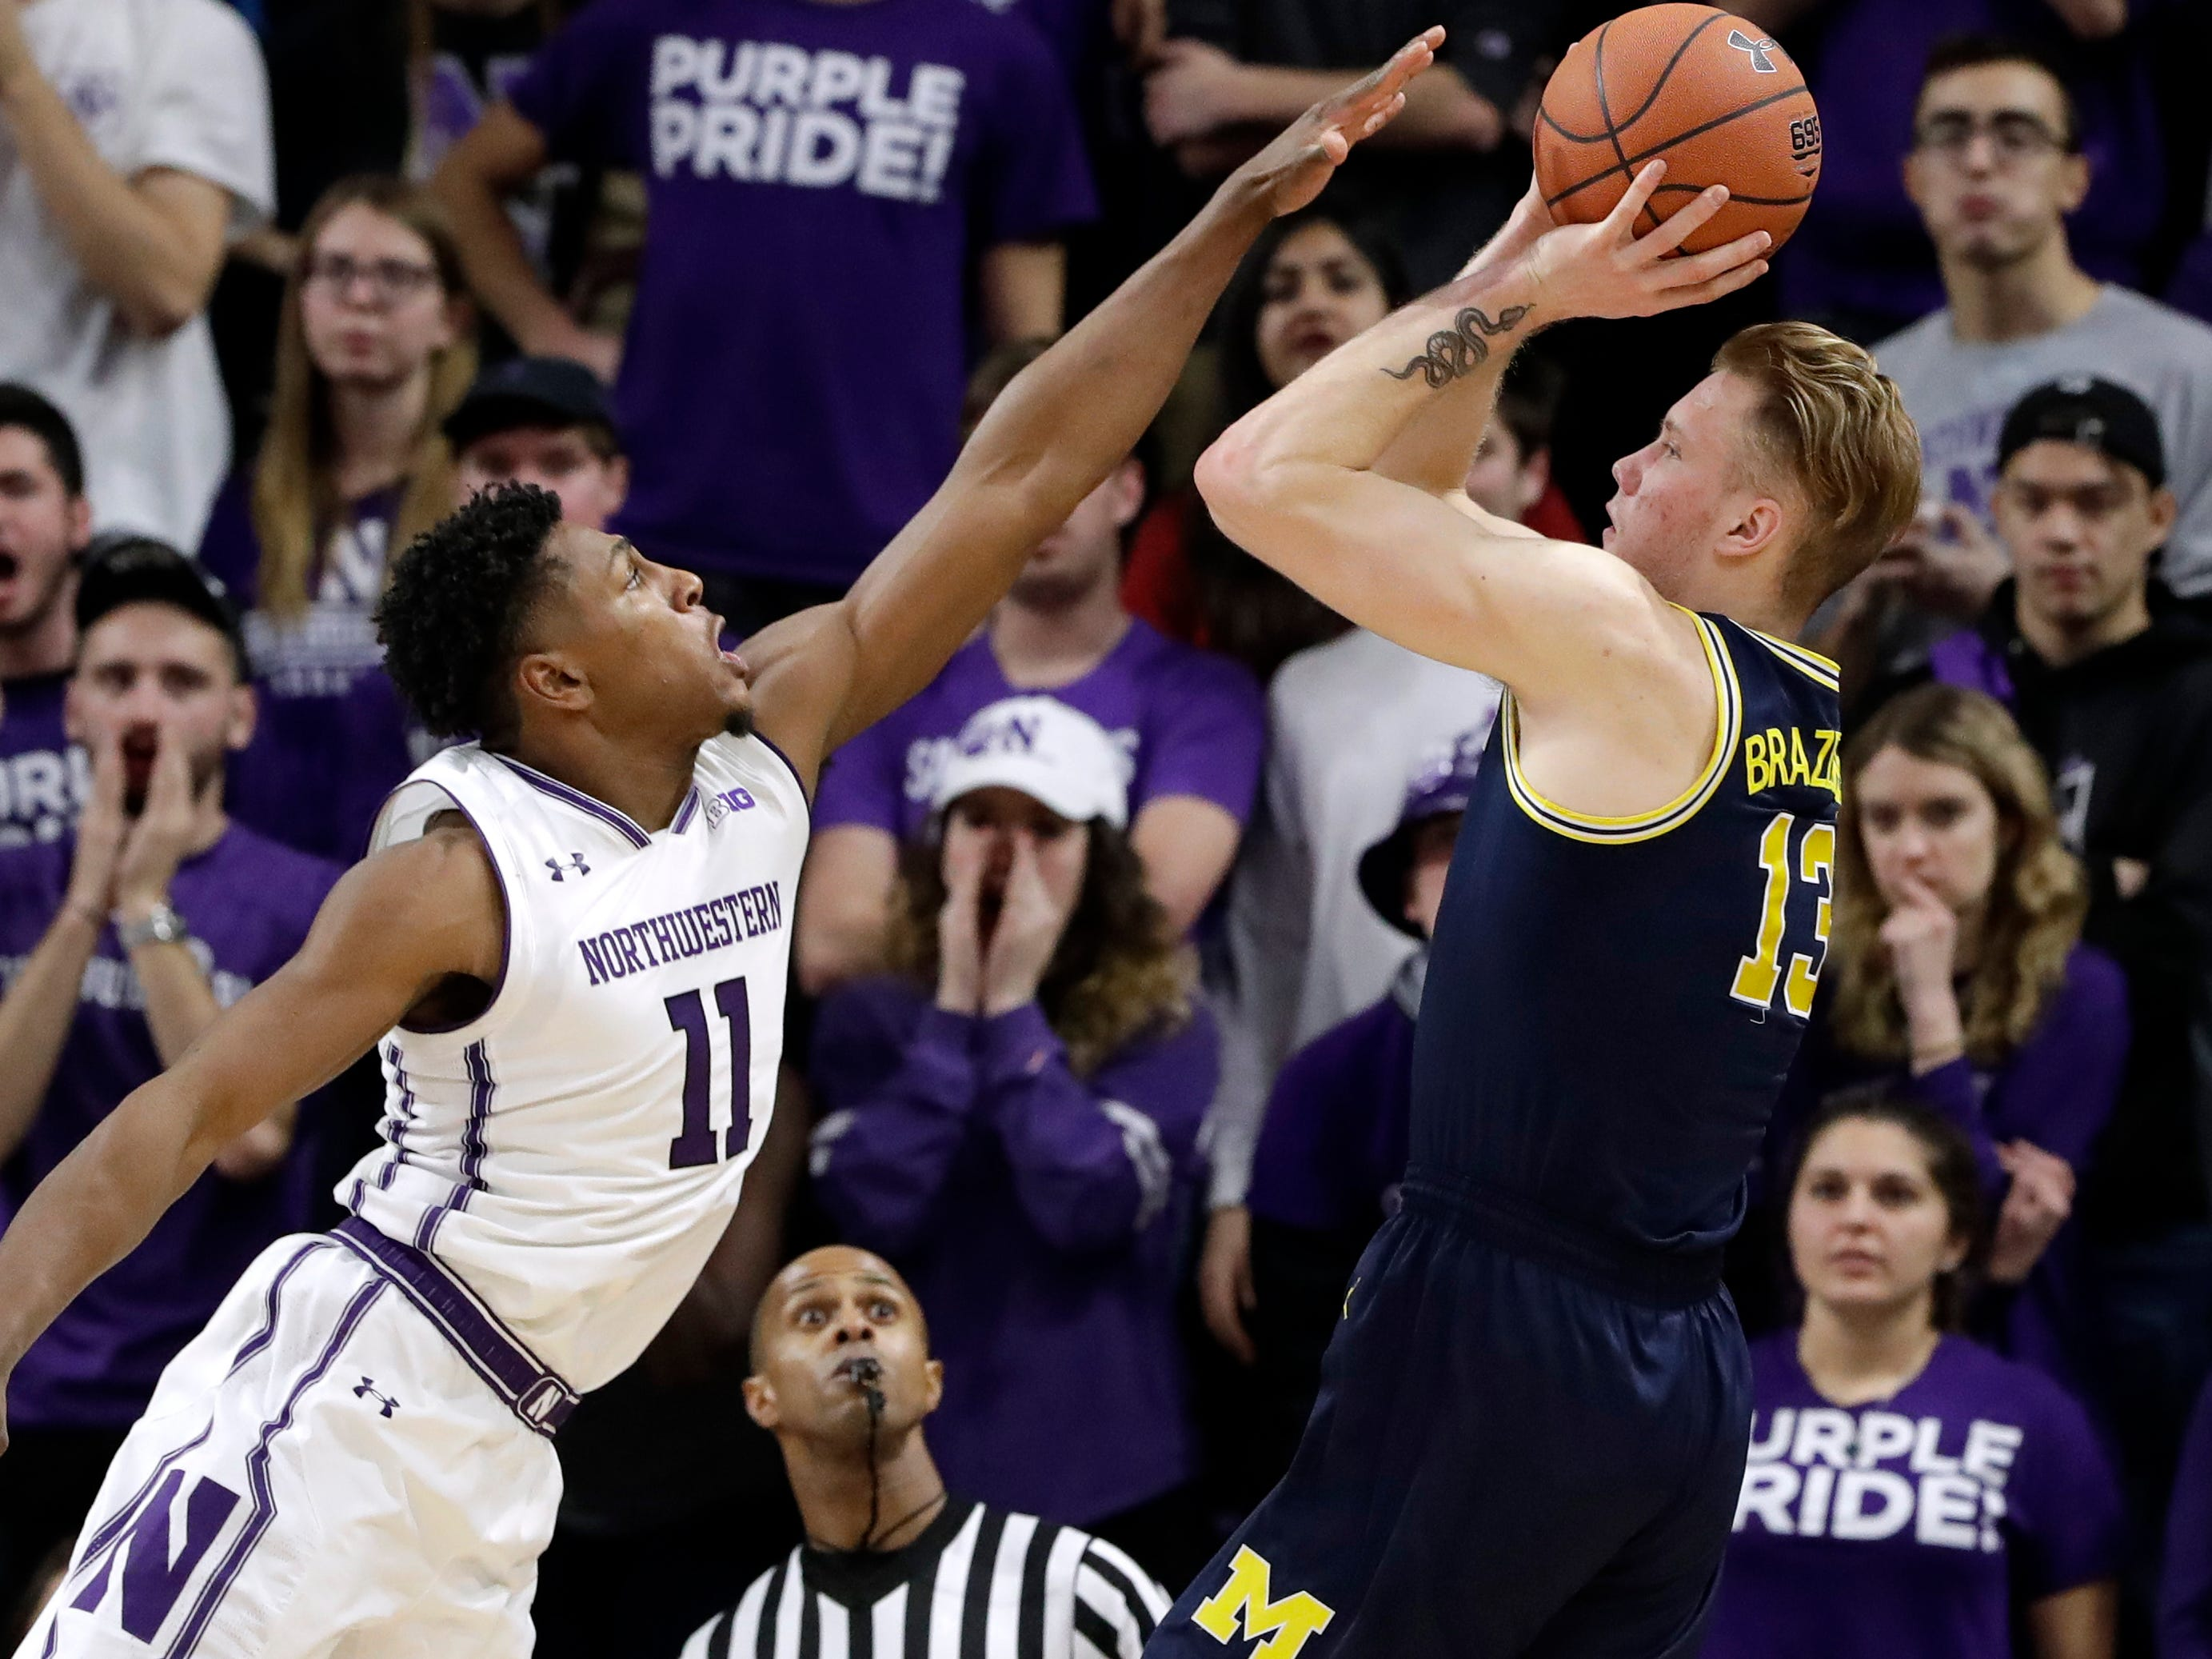 Michigan forward Ignas Brazdeikis, right shoots against Northwestern guard Anthony Gaines during the second half of U-M's 62-60 win on Tuesday, Dec. 4, 2018, in Evanston, Ill.